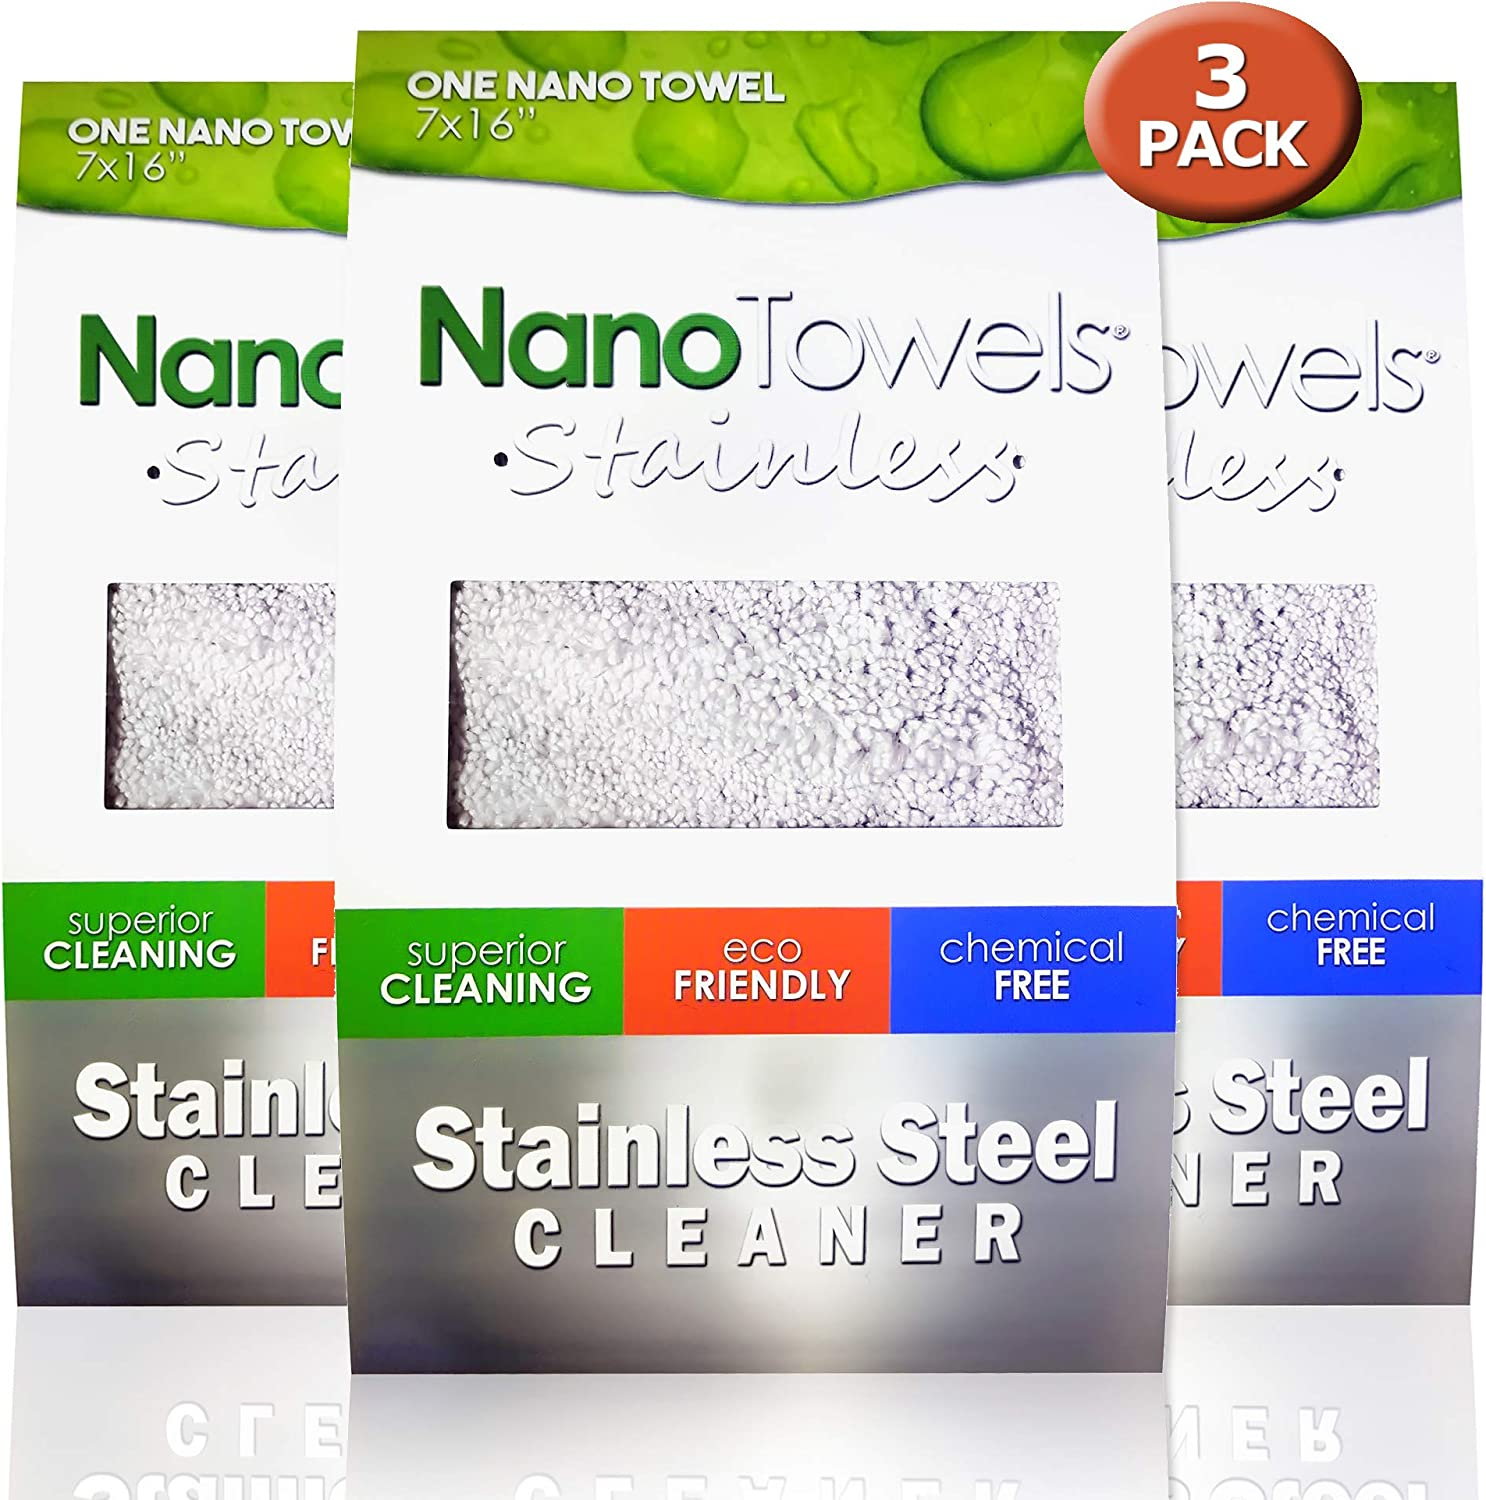 "Nano Towels Stainless Steel Cleaner 3-PACK | The Amazing Chemical Free Stainless Steel Cleaning Reusable Wipe Cloth | Kid & Pet Safe | 7x16"" (3)"